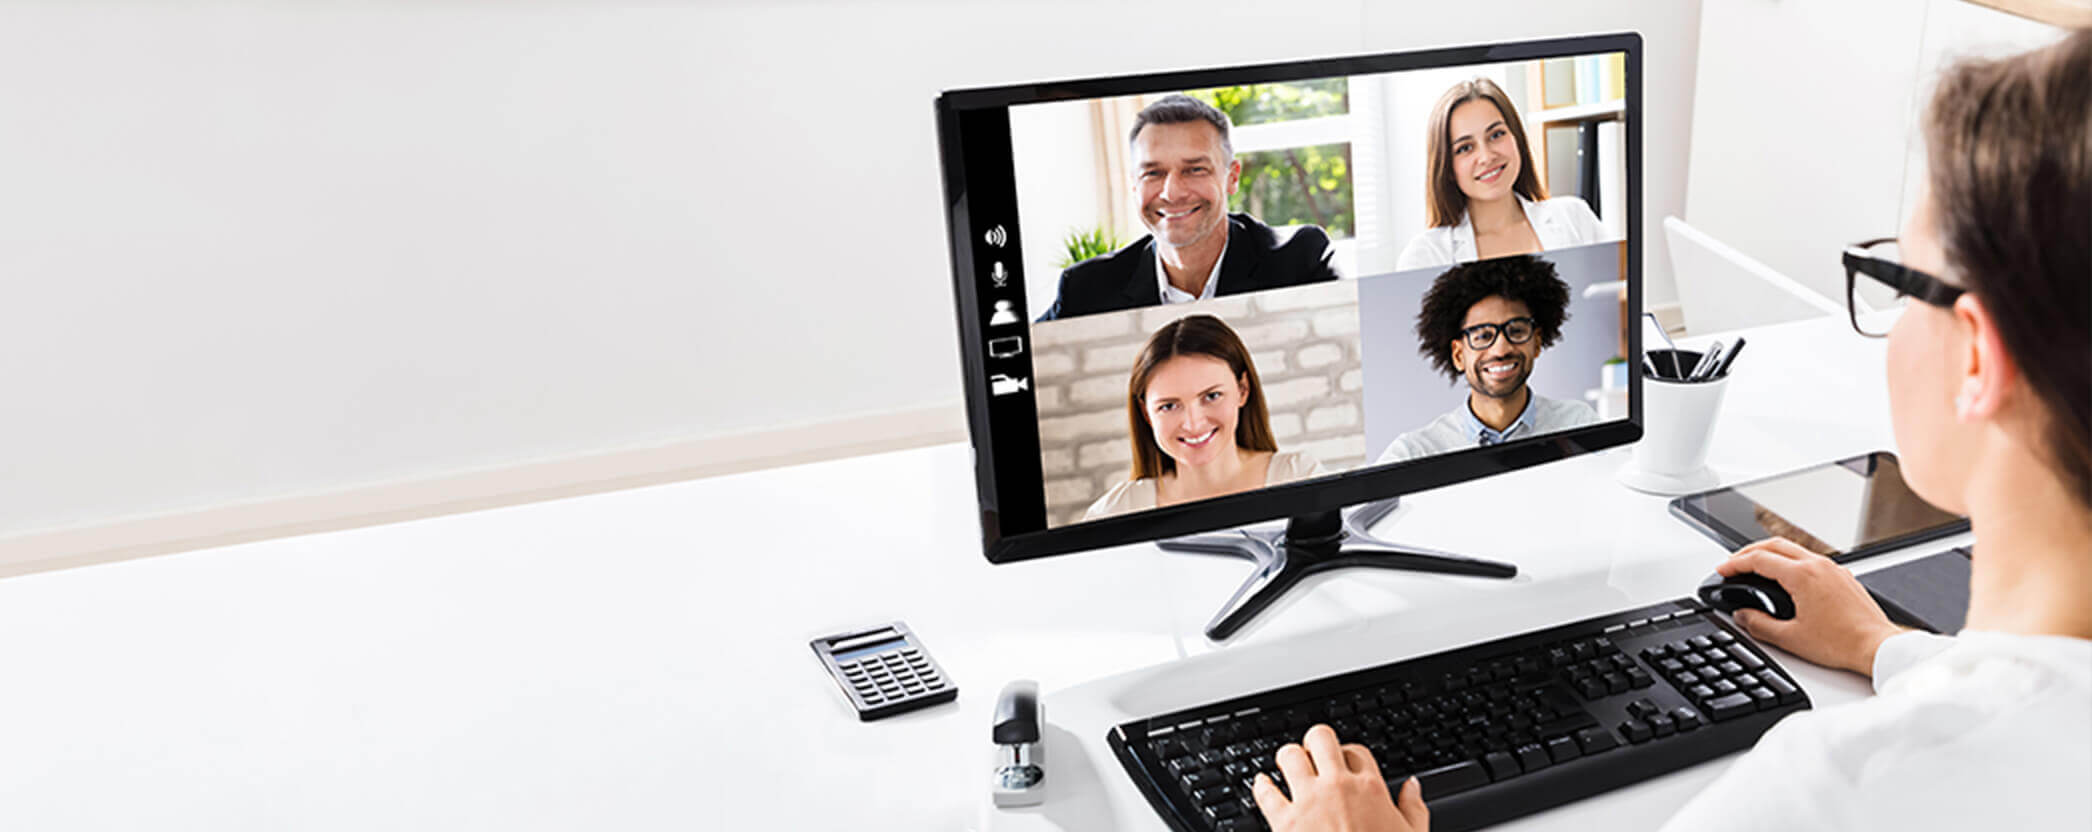 A woman at a desk particpating in a virtual meeting on her computer.